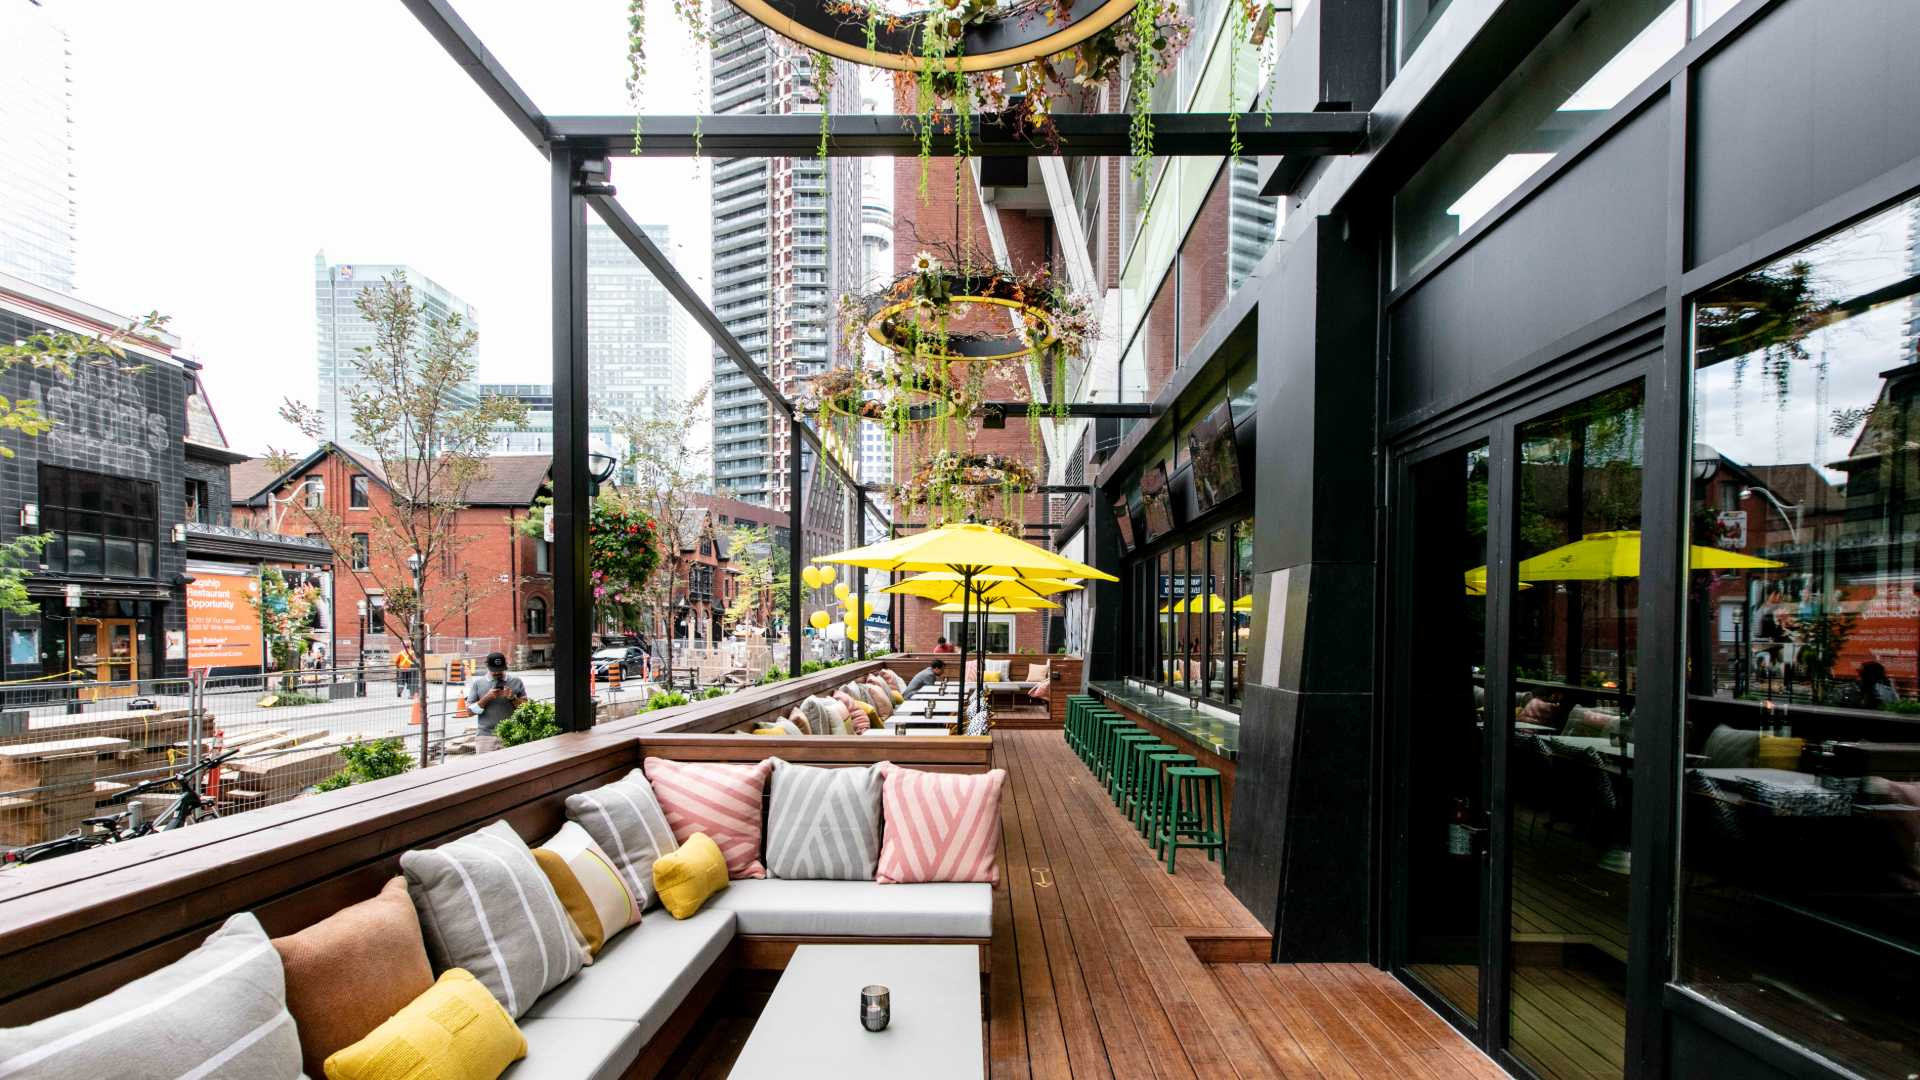 The patio at Marked, a new South American restaurant in Toronto